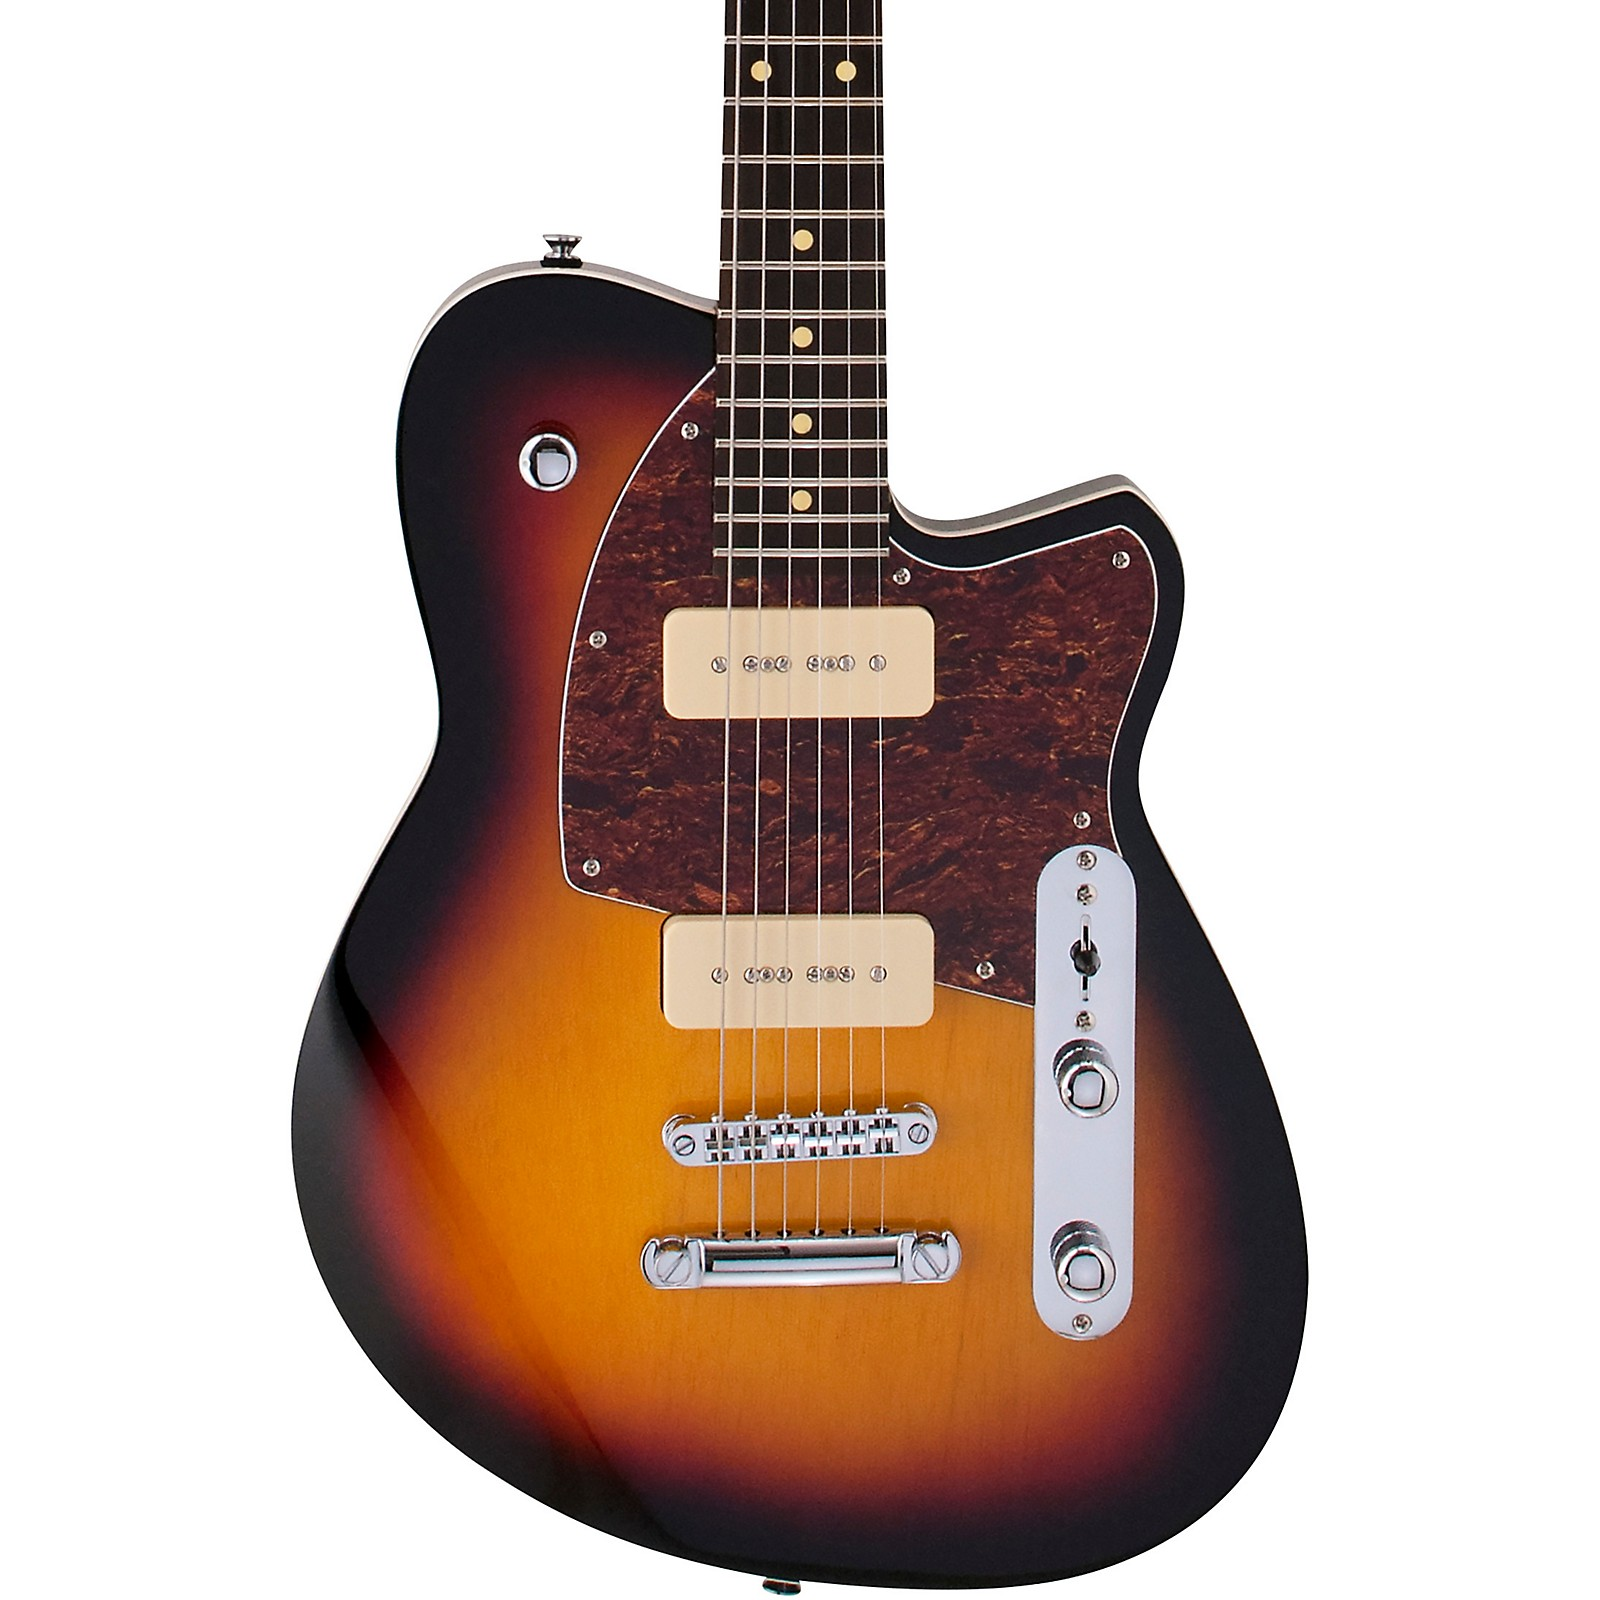 Reverend Charger 290 Electric Guitar